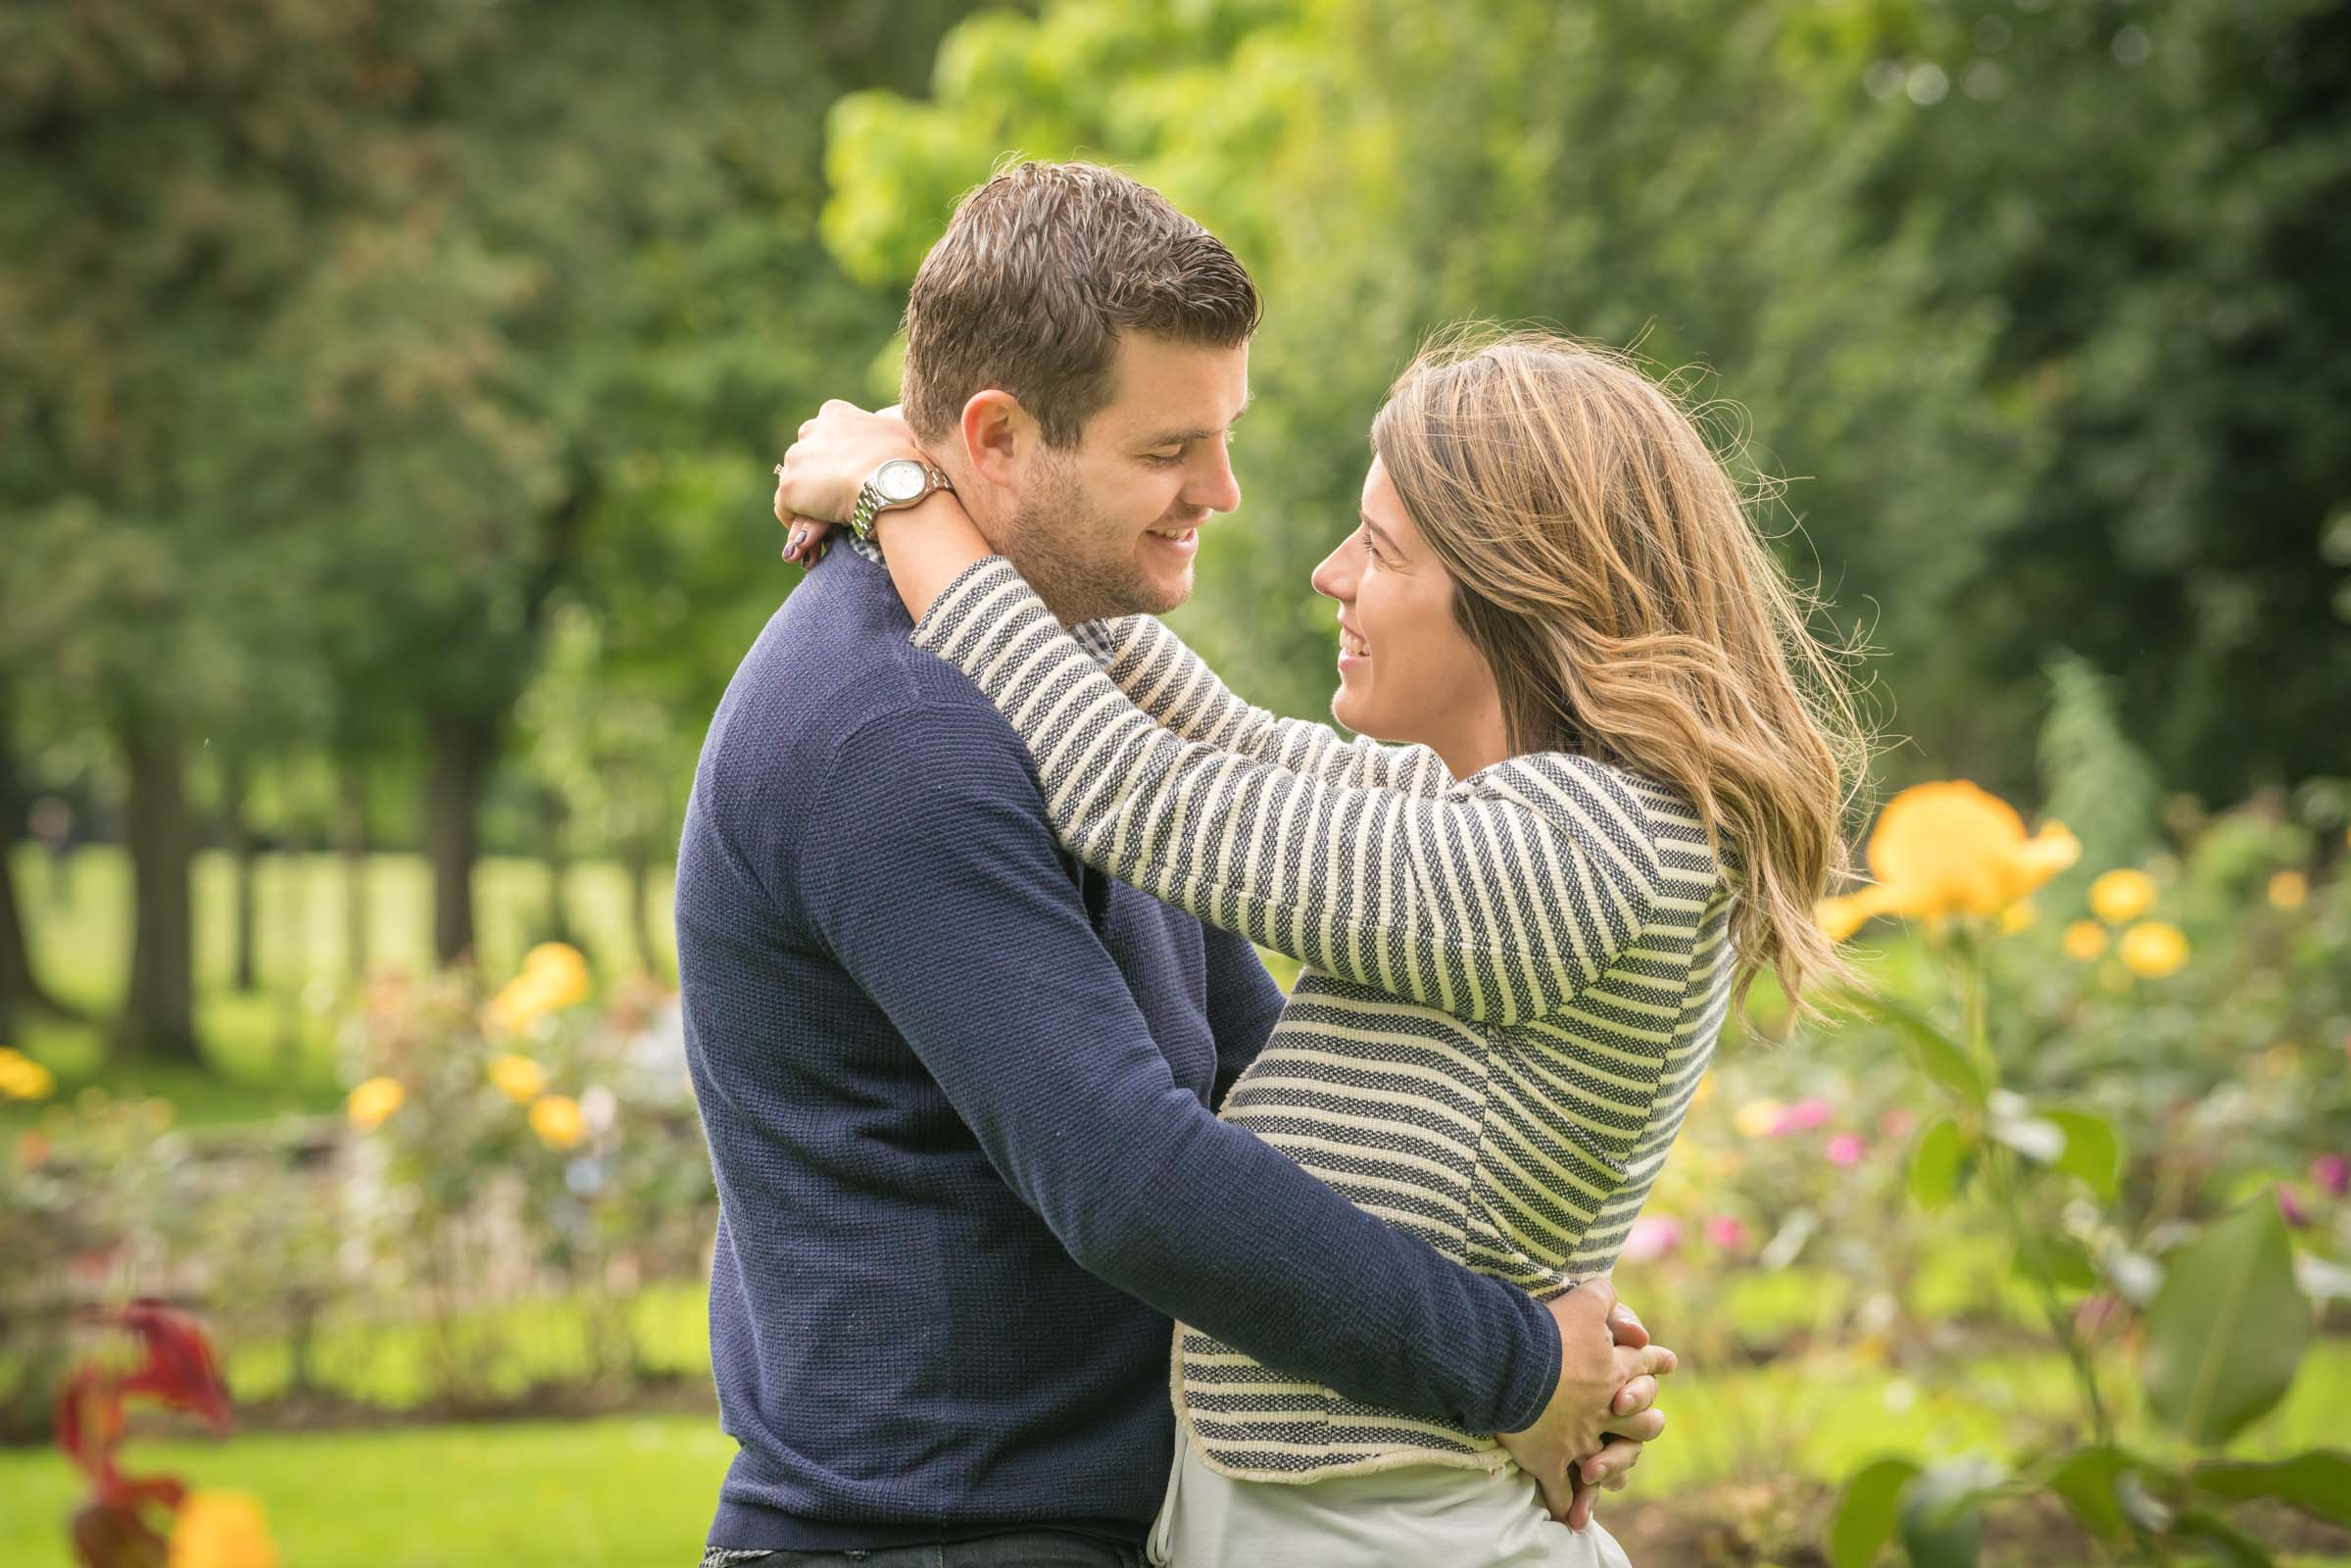 scottish-engagement-photography-elopement-dearlyphotography (2 of 45).jpg